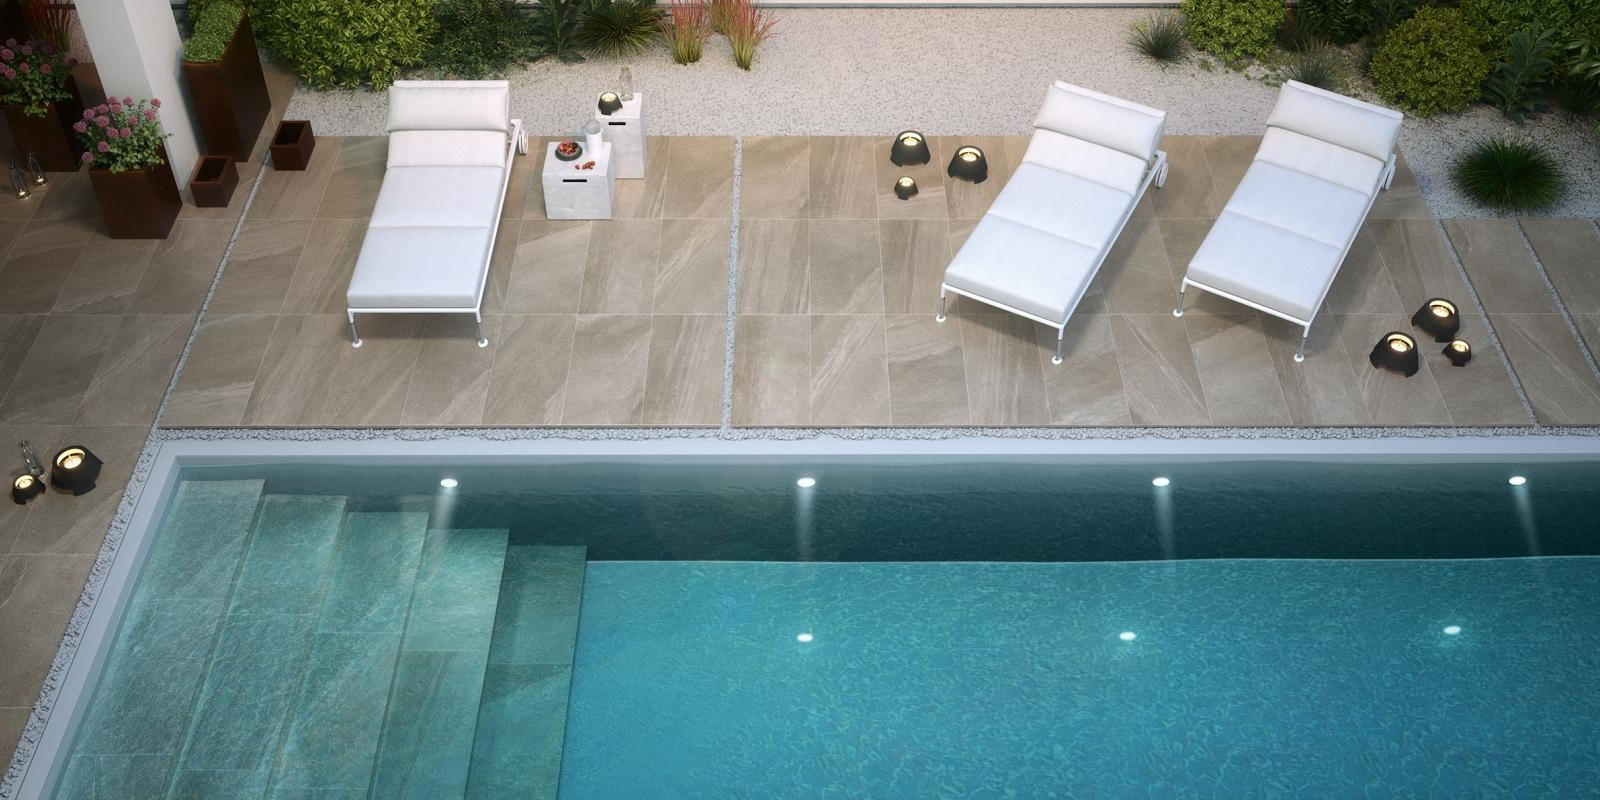 Outdoor tiles trini tile for Carrelage interieur piscine